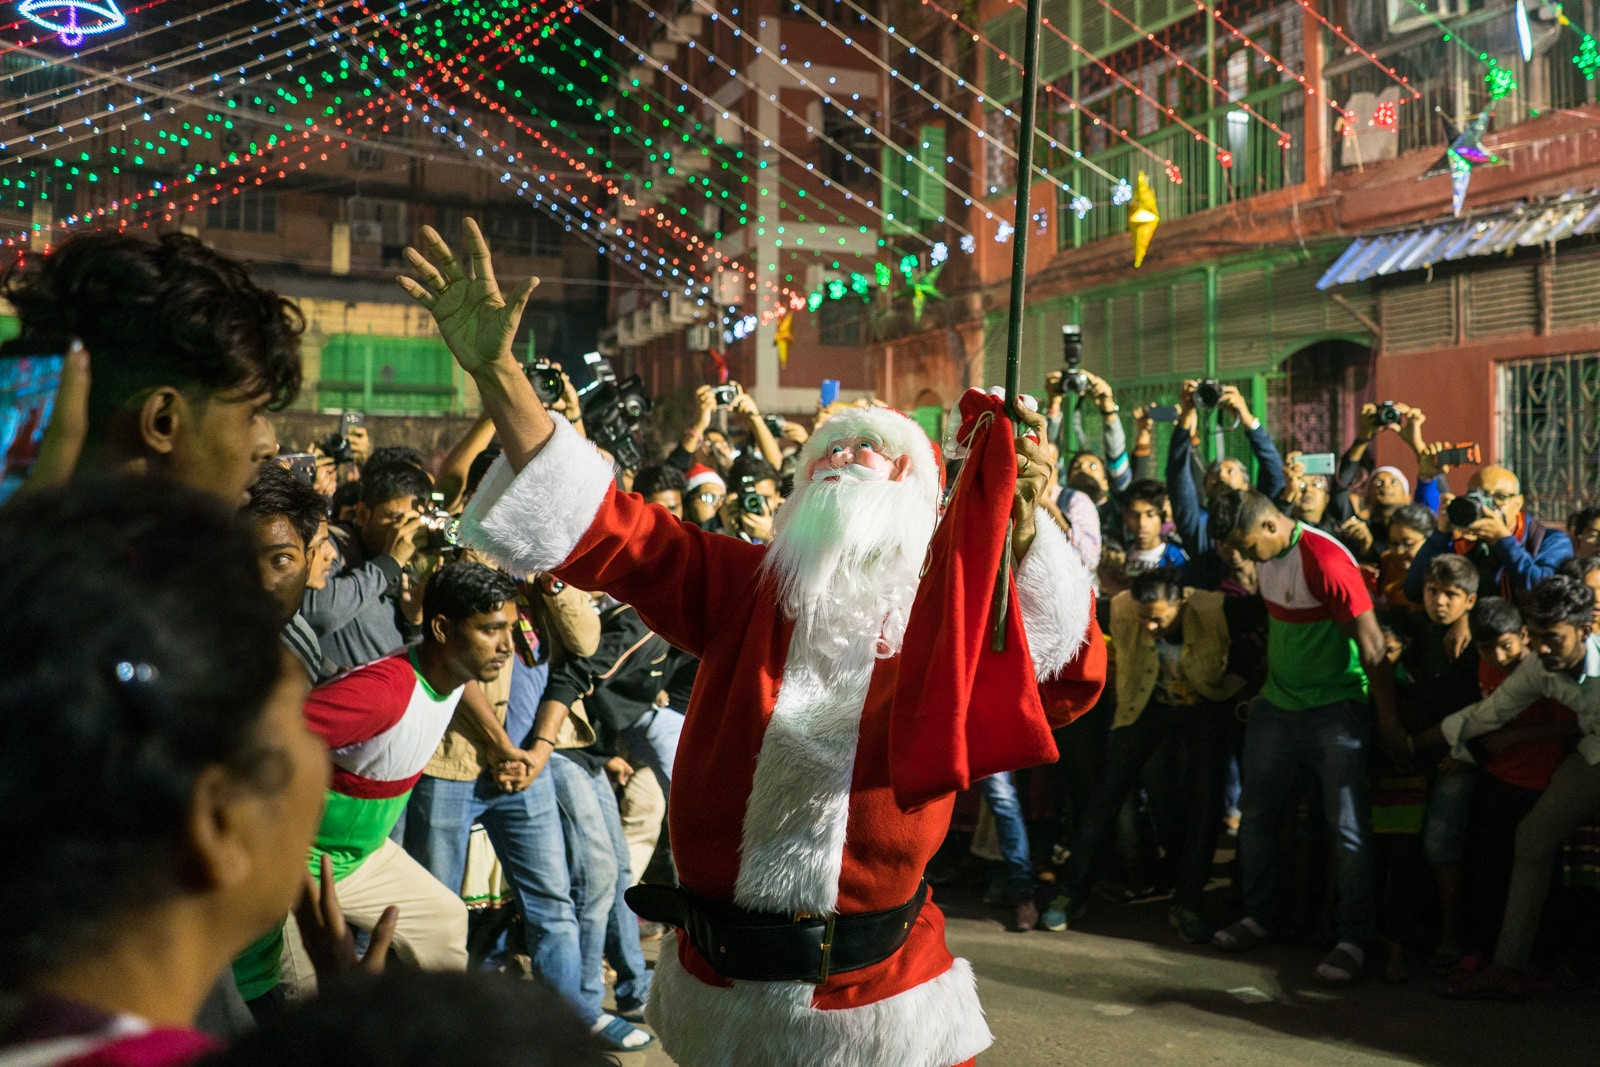 Celebrating Christmas in Kolkata, India - Santas dancing in the crowd at Barracks - Lost With Purpose travel blog